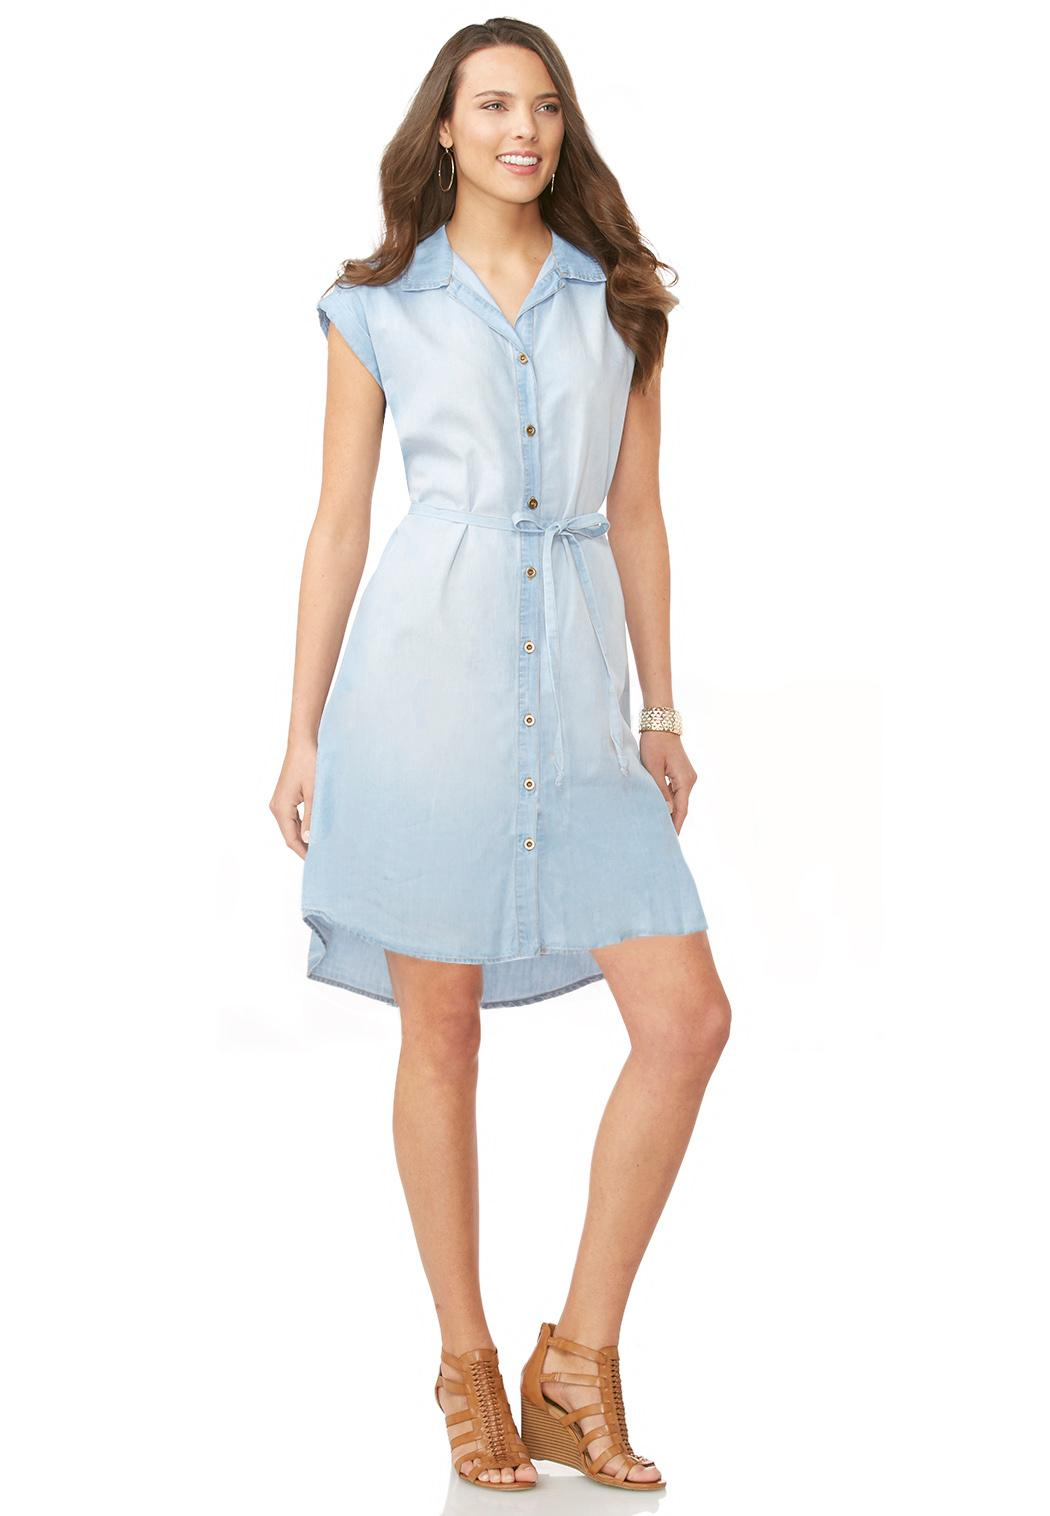 Belted chambray shirt dress dresses cato fashions for Belted chambray shirt dress